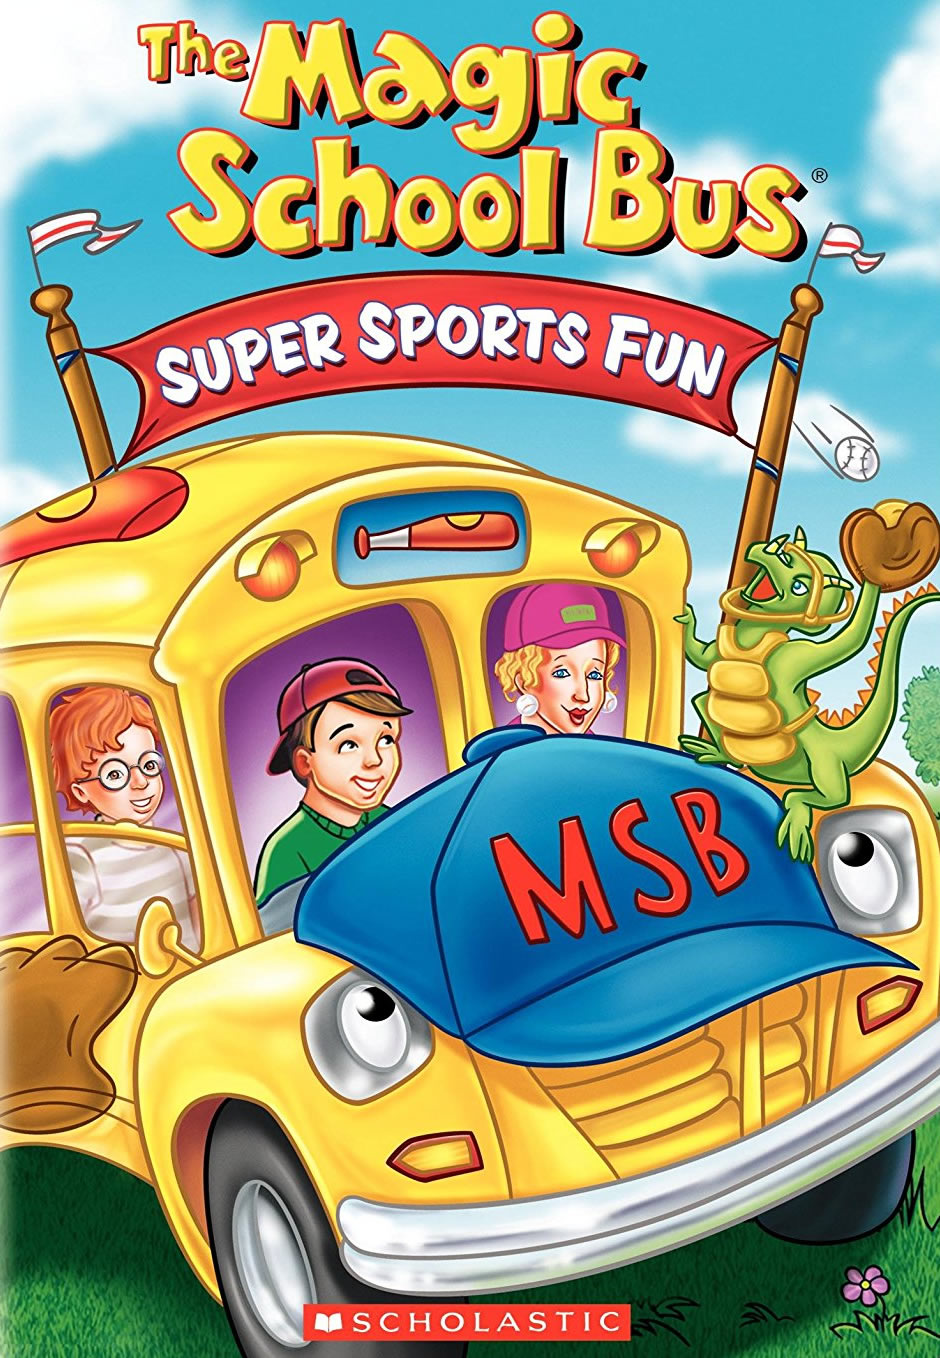 The Magic School Bus - Super Sports Fun by Magic School Bus